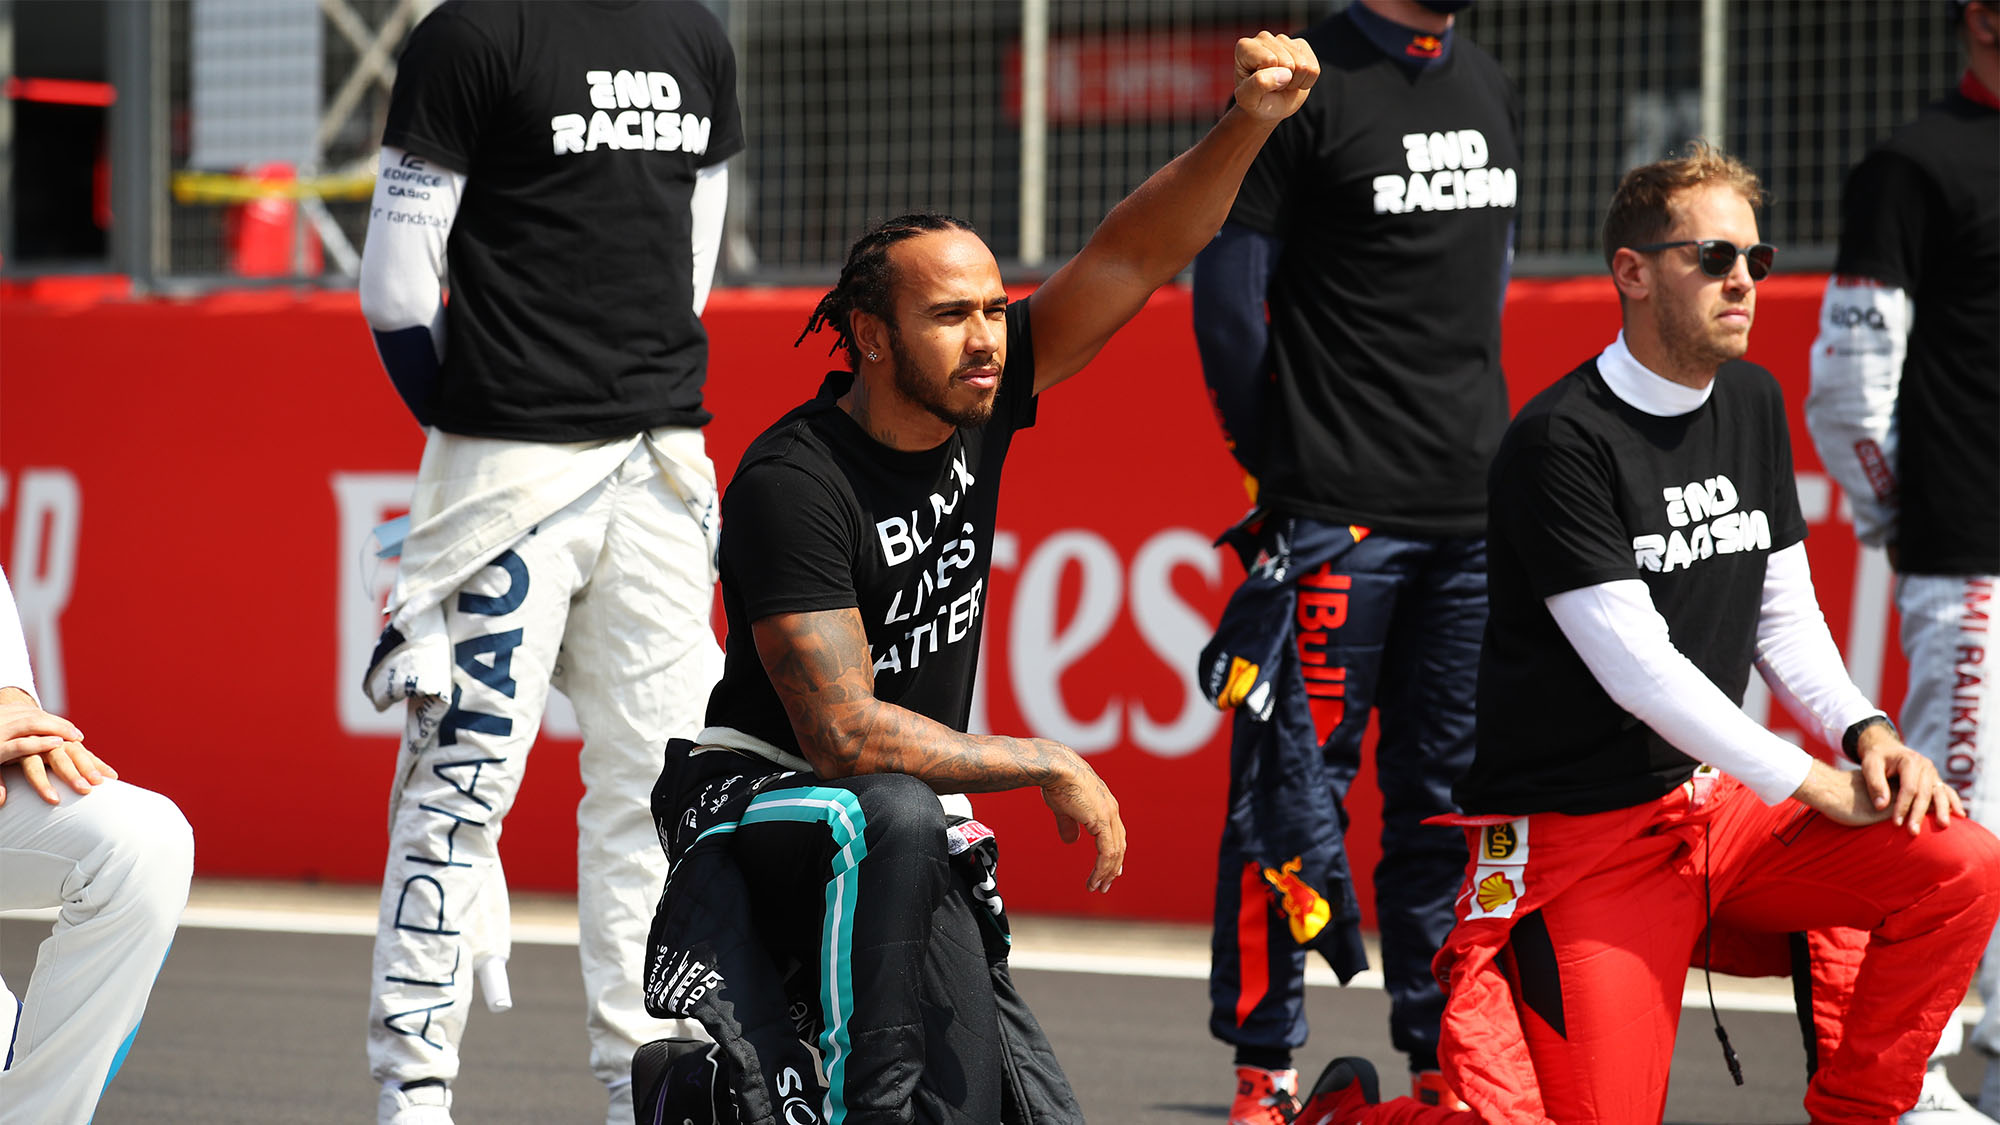 Lewis Hamilton explains why he'll keep taking the knee before F1 races